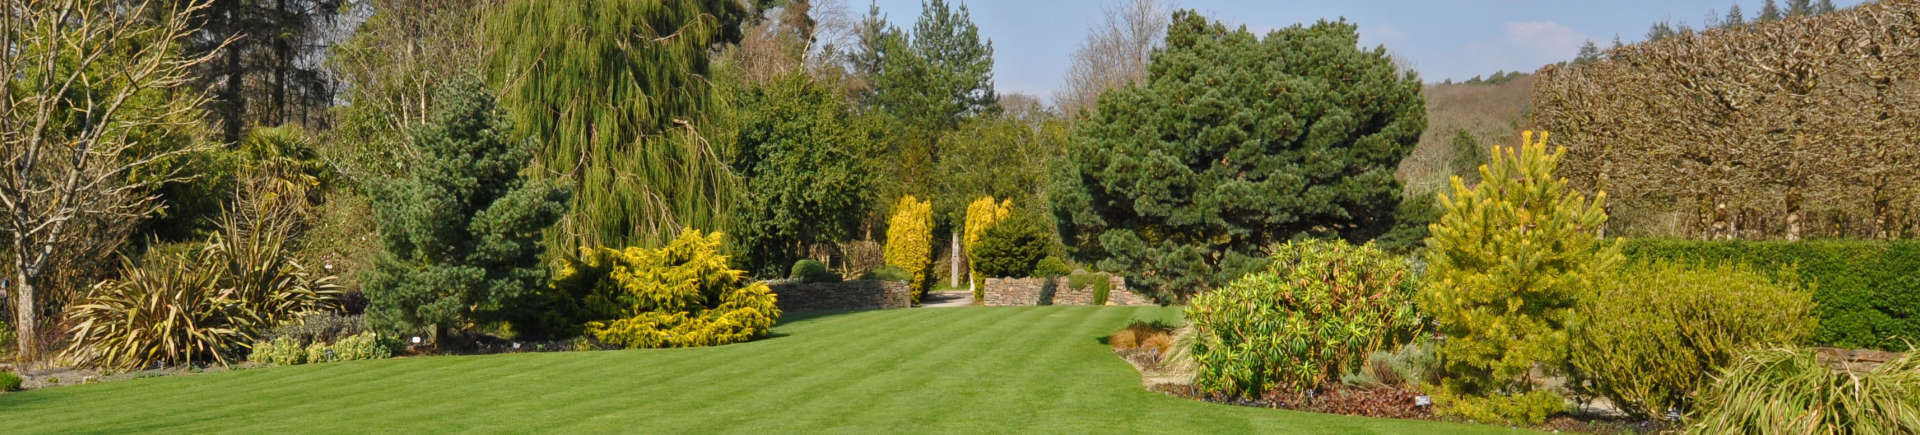 manicured garden with perfect lawn and trees